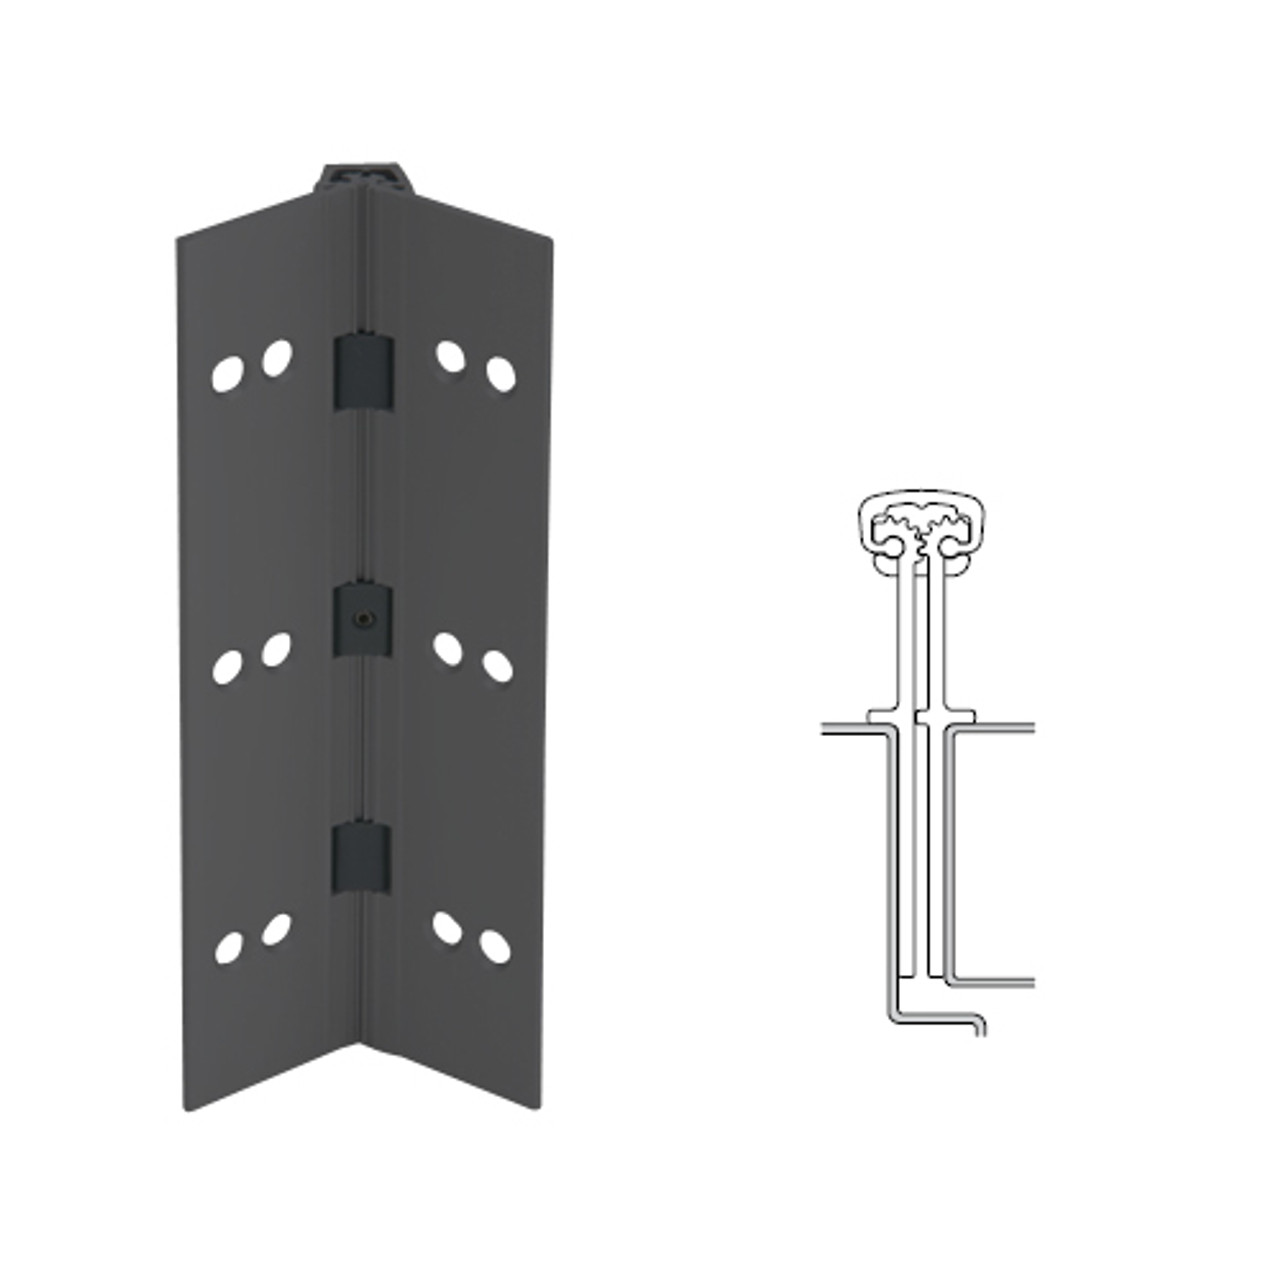 040XY-315AN-95-TF IVES Full Mortise Continuous Geared Hinges with Thread Forming Screws in Anodized Black